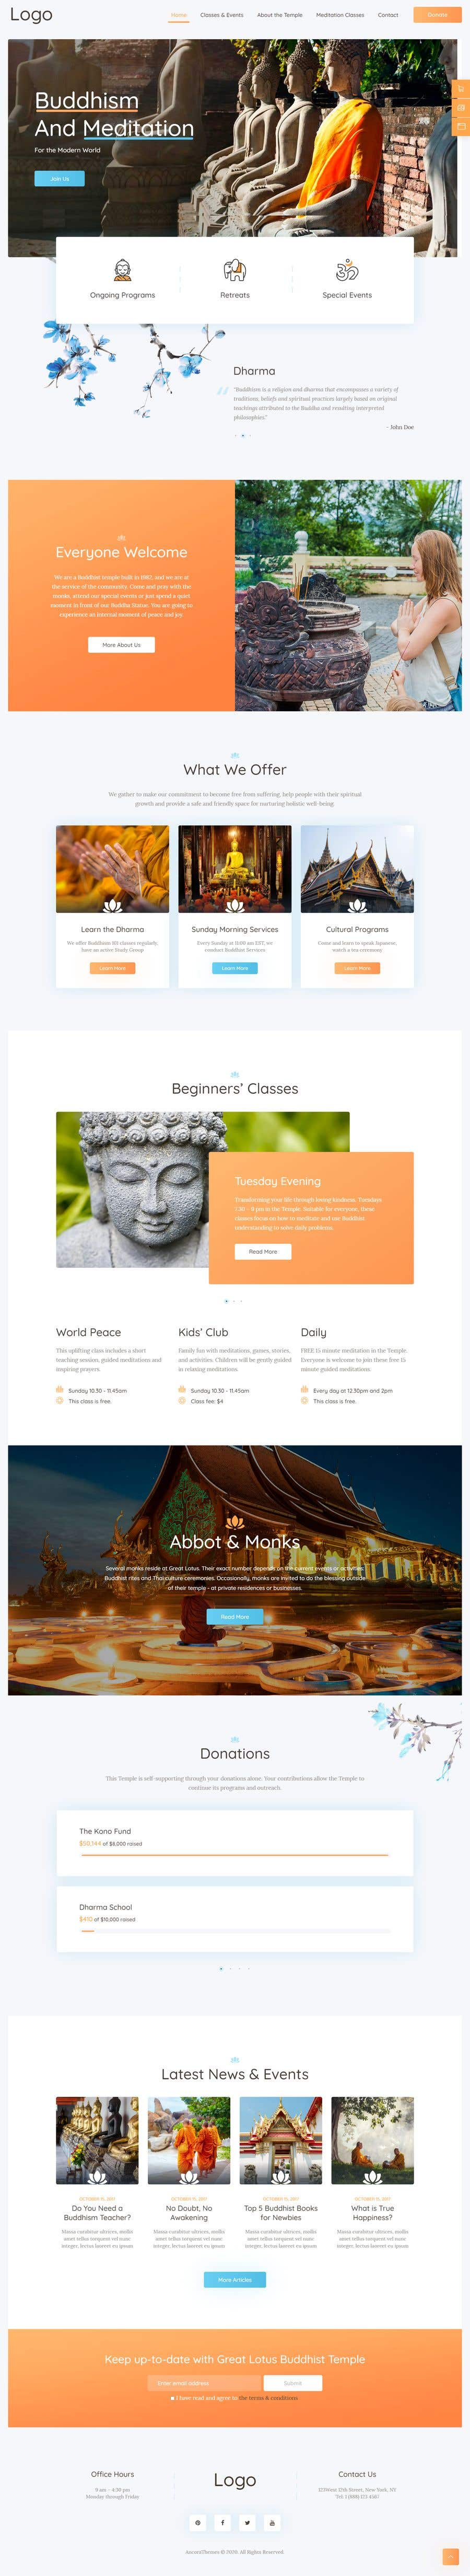 Konkurrenceindlæg #                                        30                                      for                                         A Professional Web Designer is require to design a Buddhist Charity Website